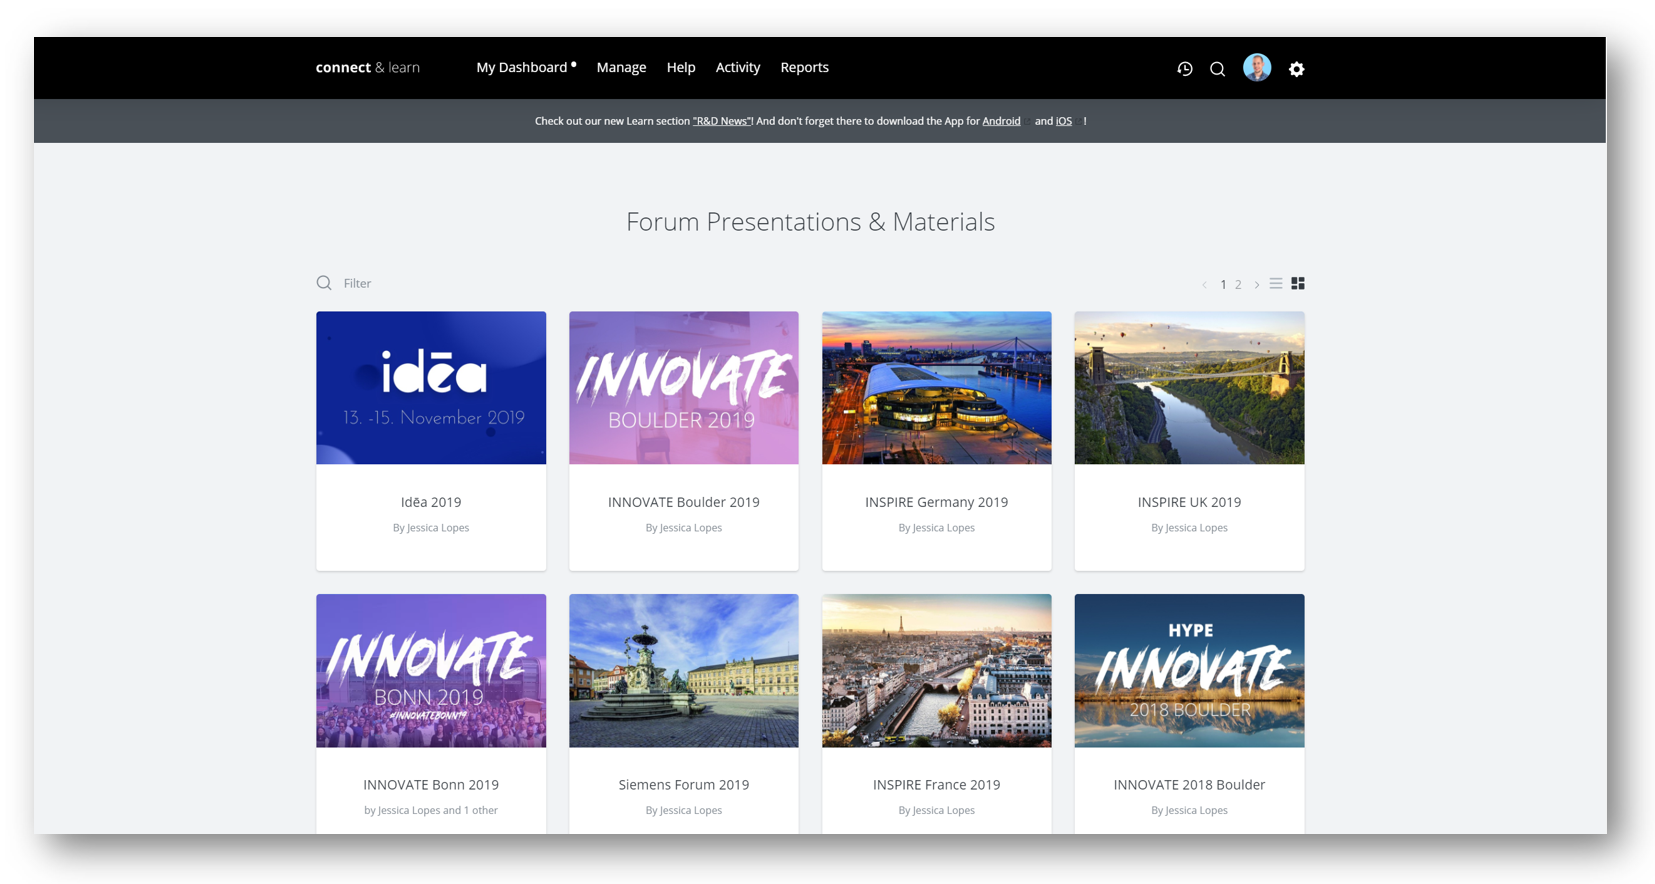 ConnectAndLearn_Forum-Presentations-Material-2